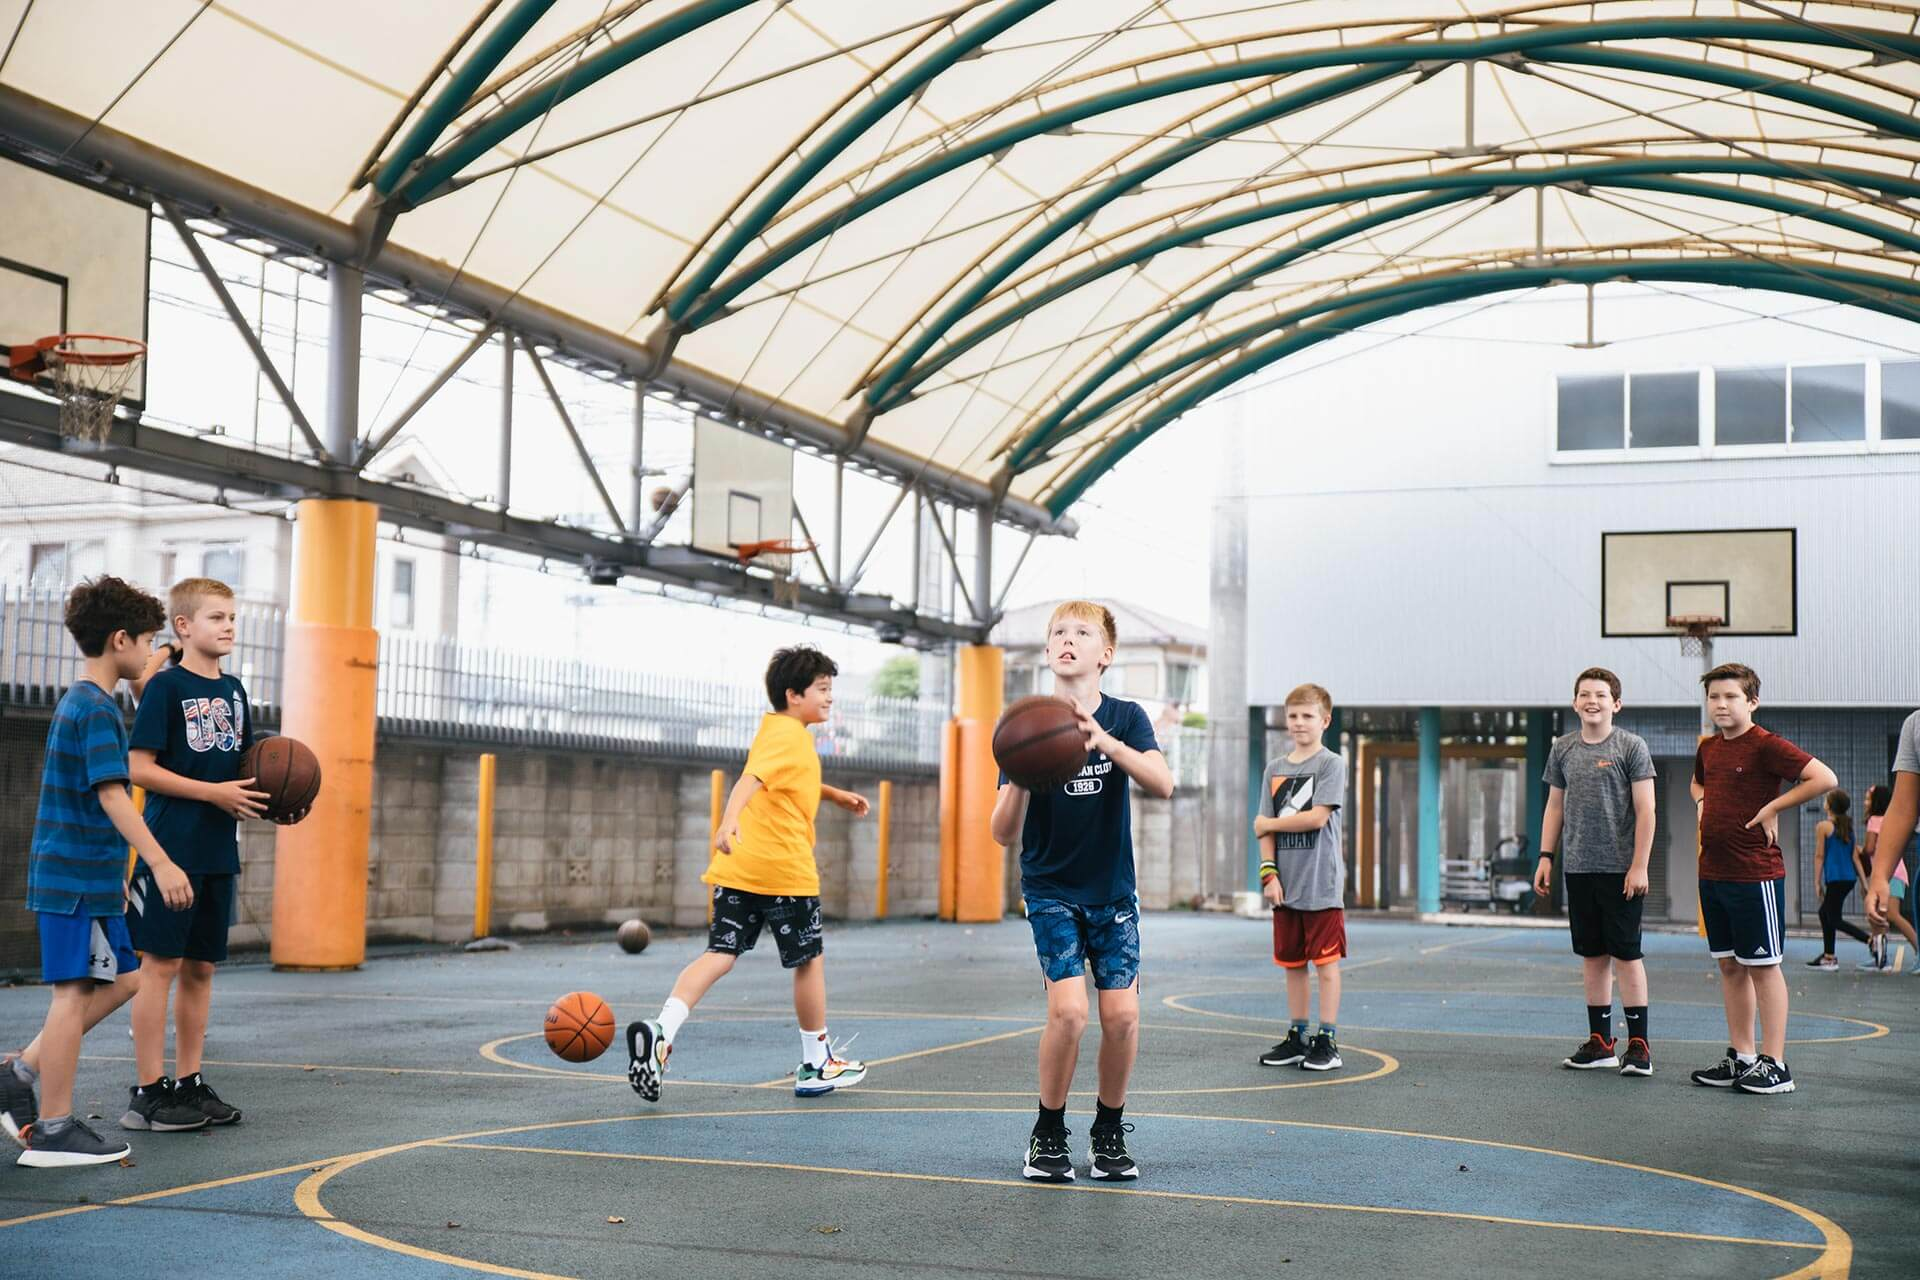 Students Play Basketball on the Elementary School Basketball Courts